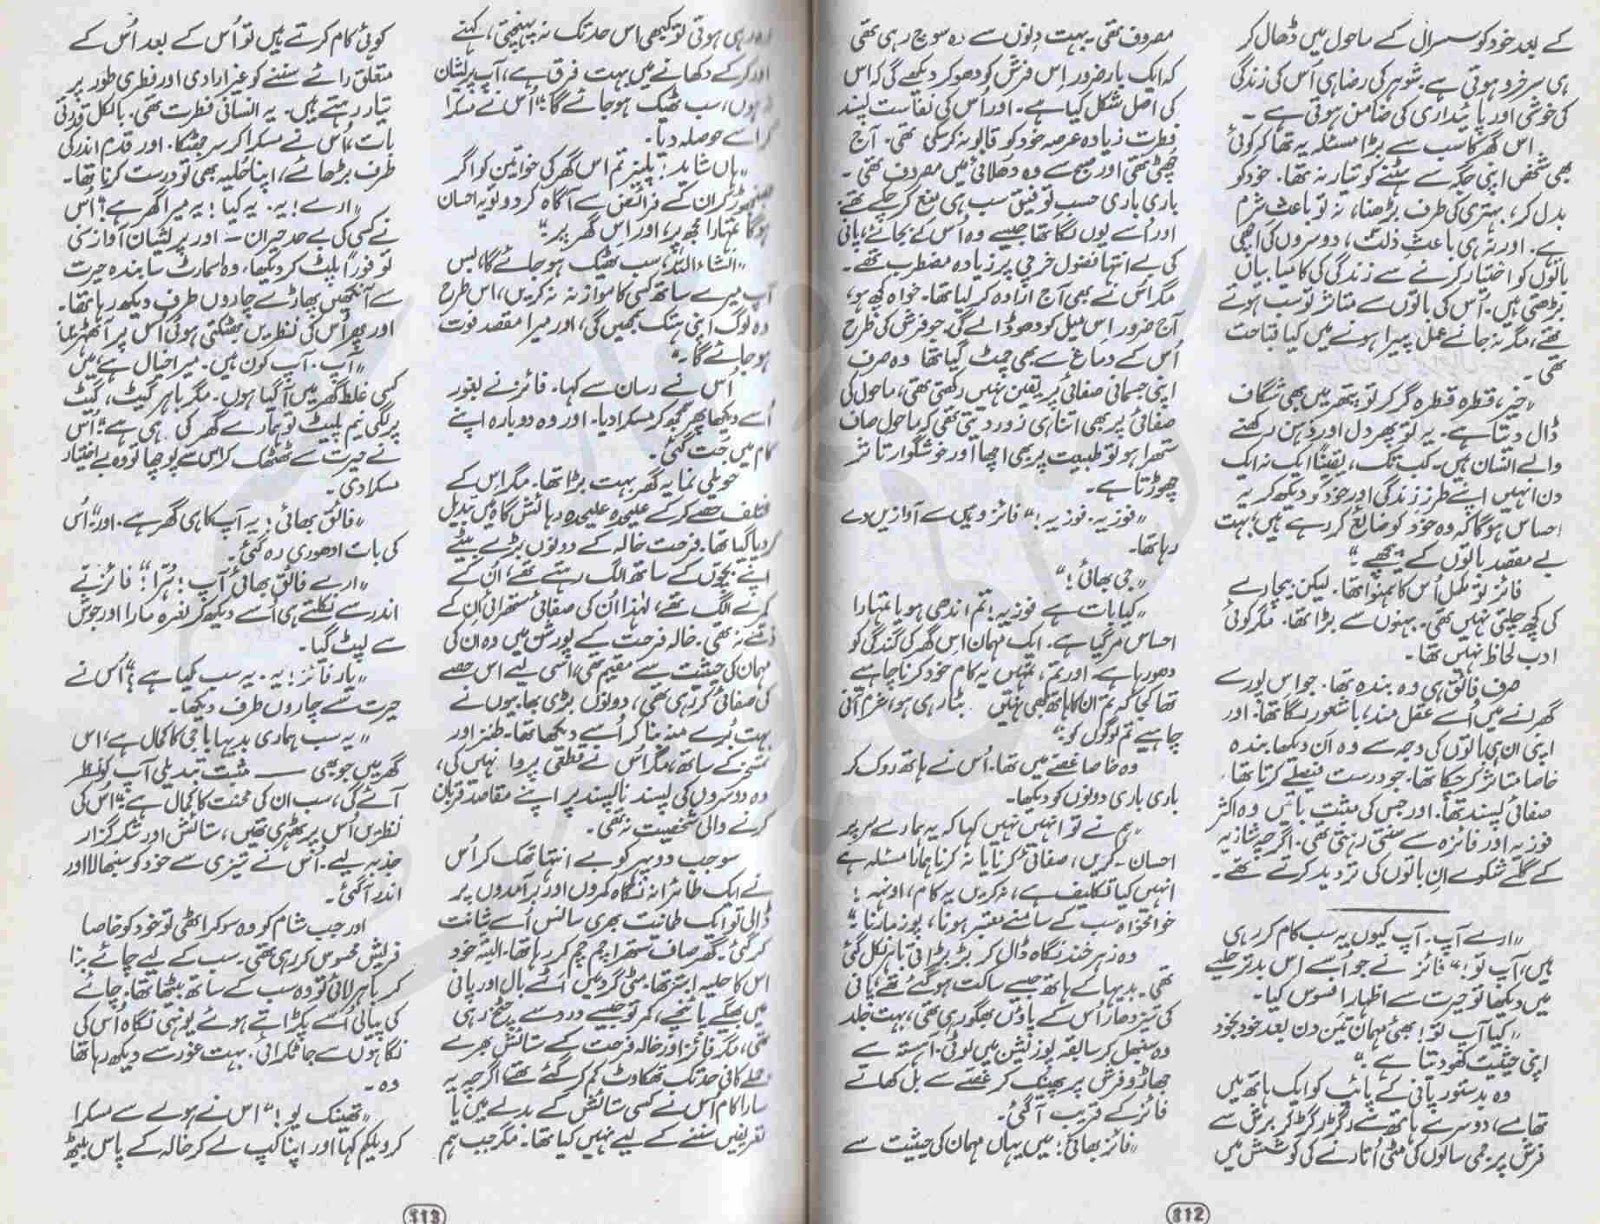 patang bazi essay in urdu Get pdf copy book of basant tehwar islami saqafat ya toheene risalat written by muhammad akhter siddique read introduction and history of basnat tehwar and patan bazi islamic point of view, harmful effects of patang bazi in our society and in our life, also read basant ka sharia hukm in the urdu language file size 09mb with total 57 pages.